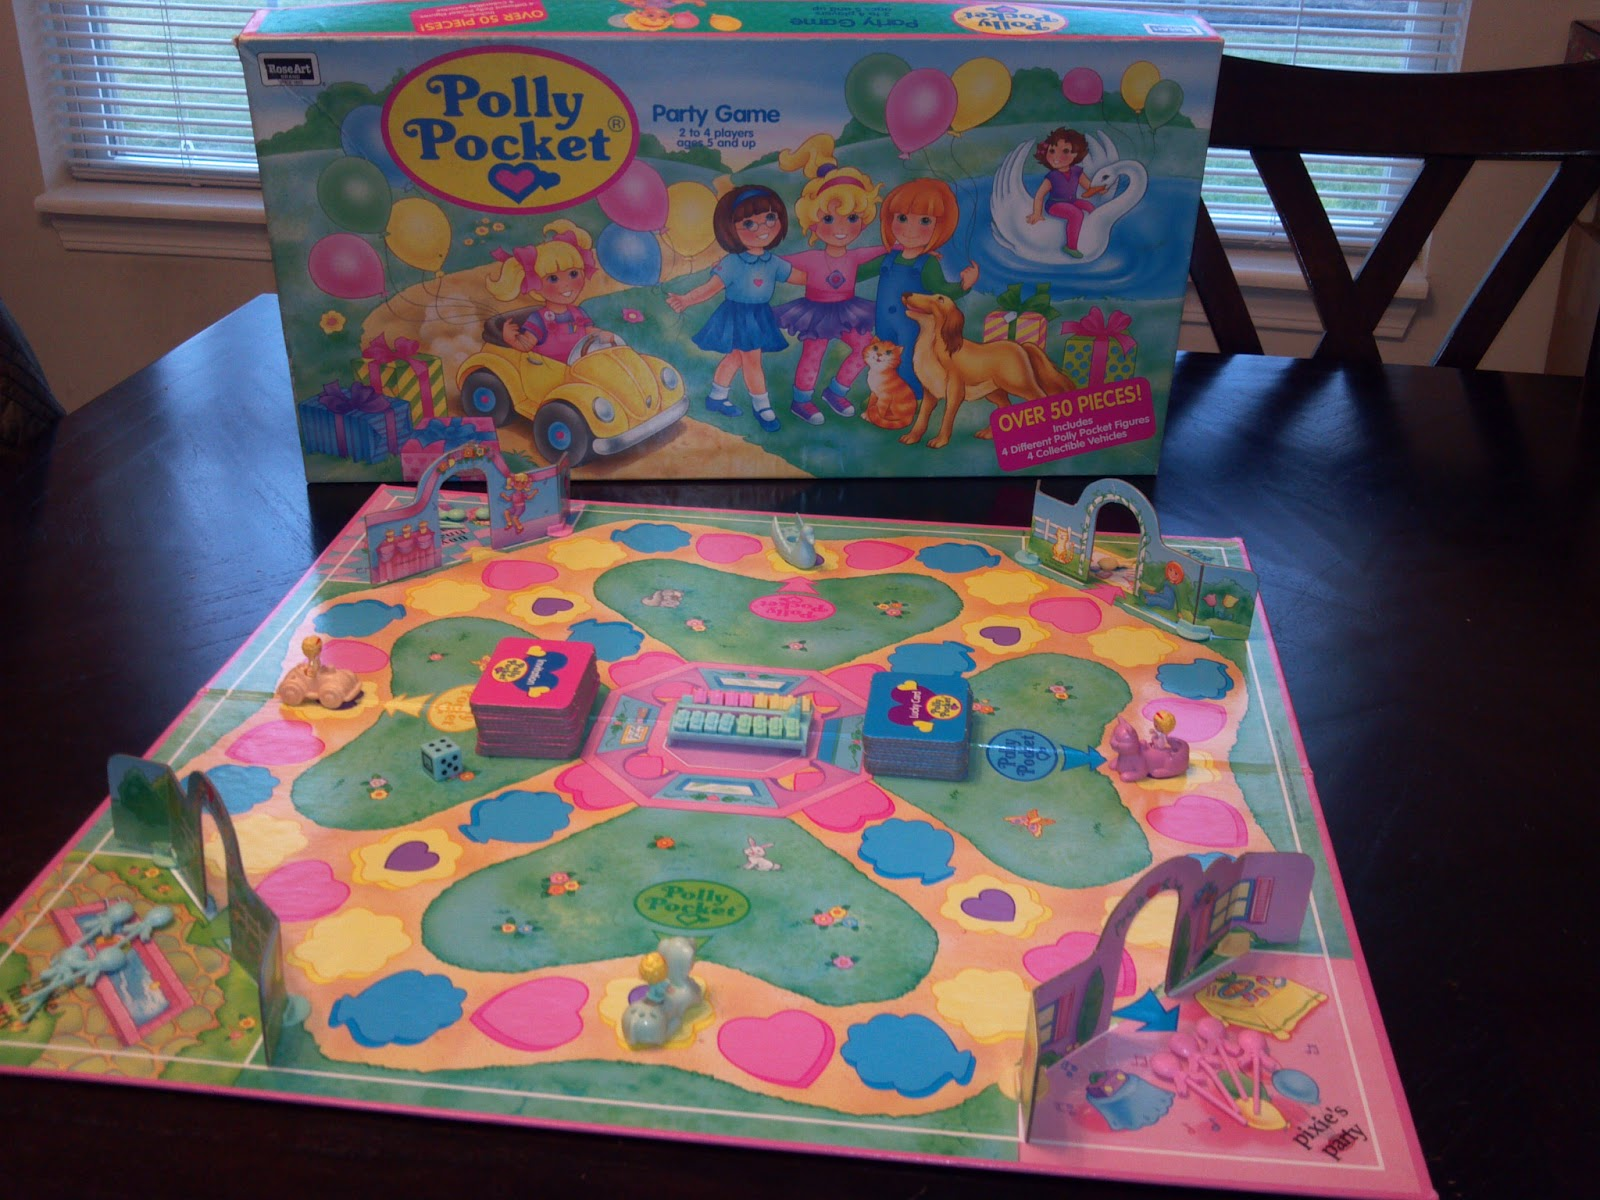 Polly Pocket Party Game | A Board Game A Day